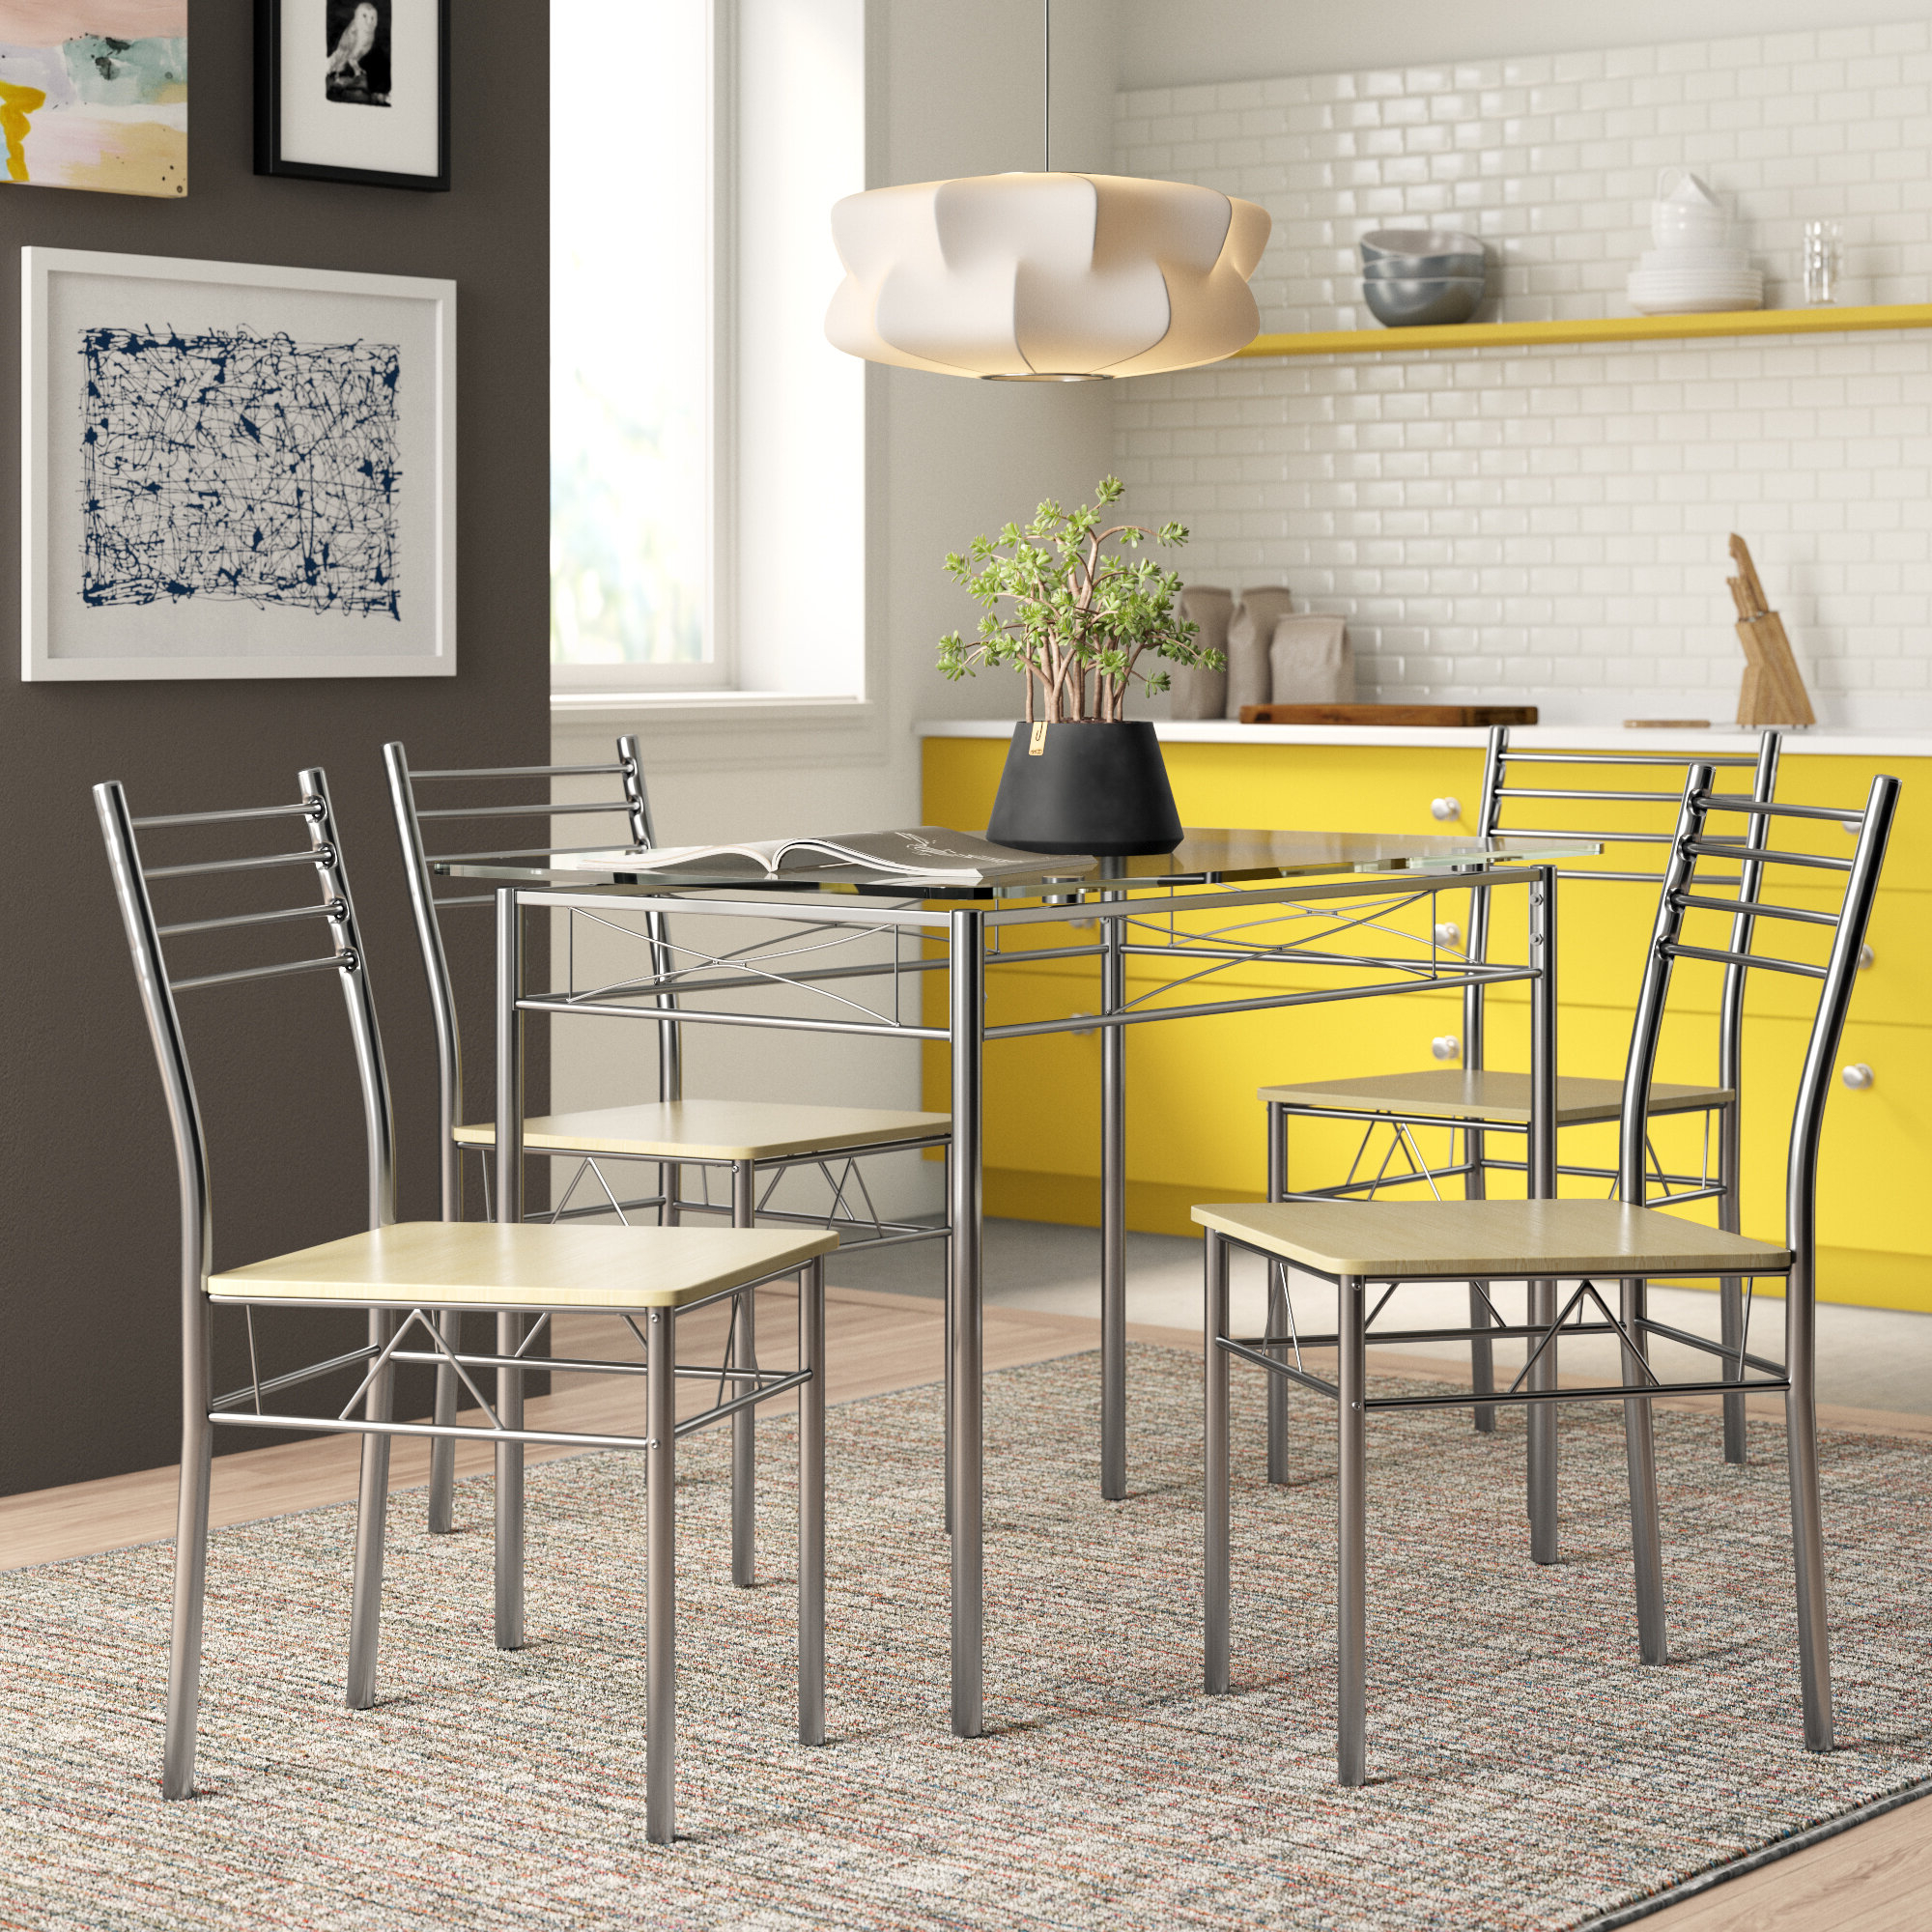 Zipcode Design North Reading 5 Piece Dining Table Set & Reviews Throughout Latest Middleport 5 Piece Dining Sets (View 6 of 25)